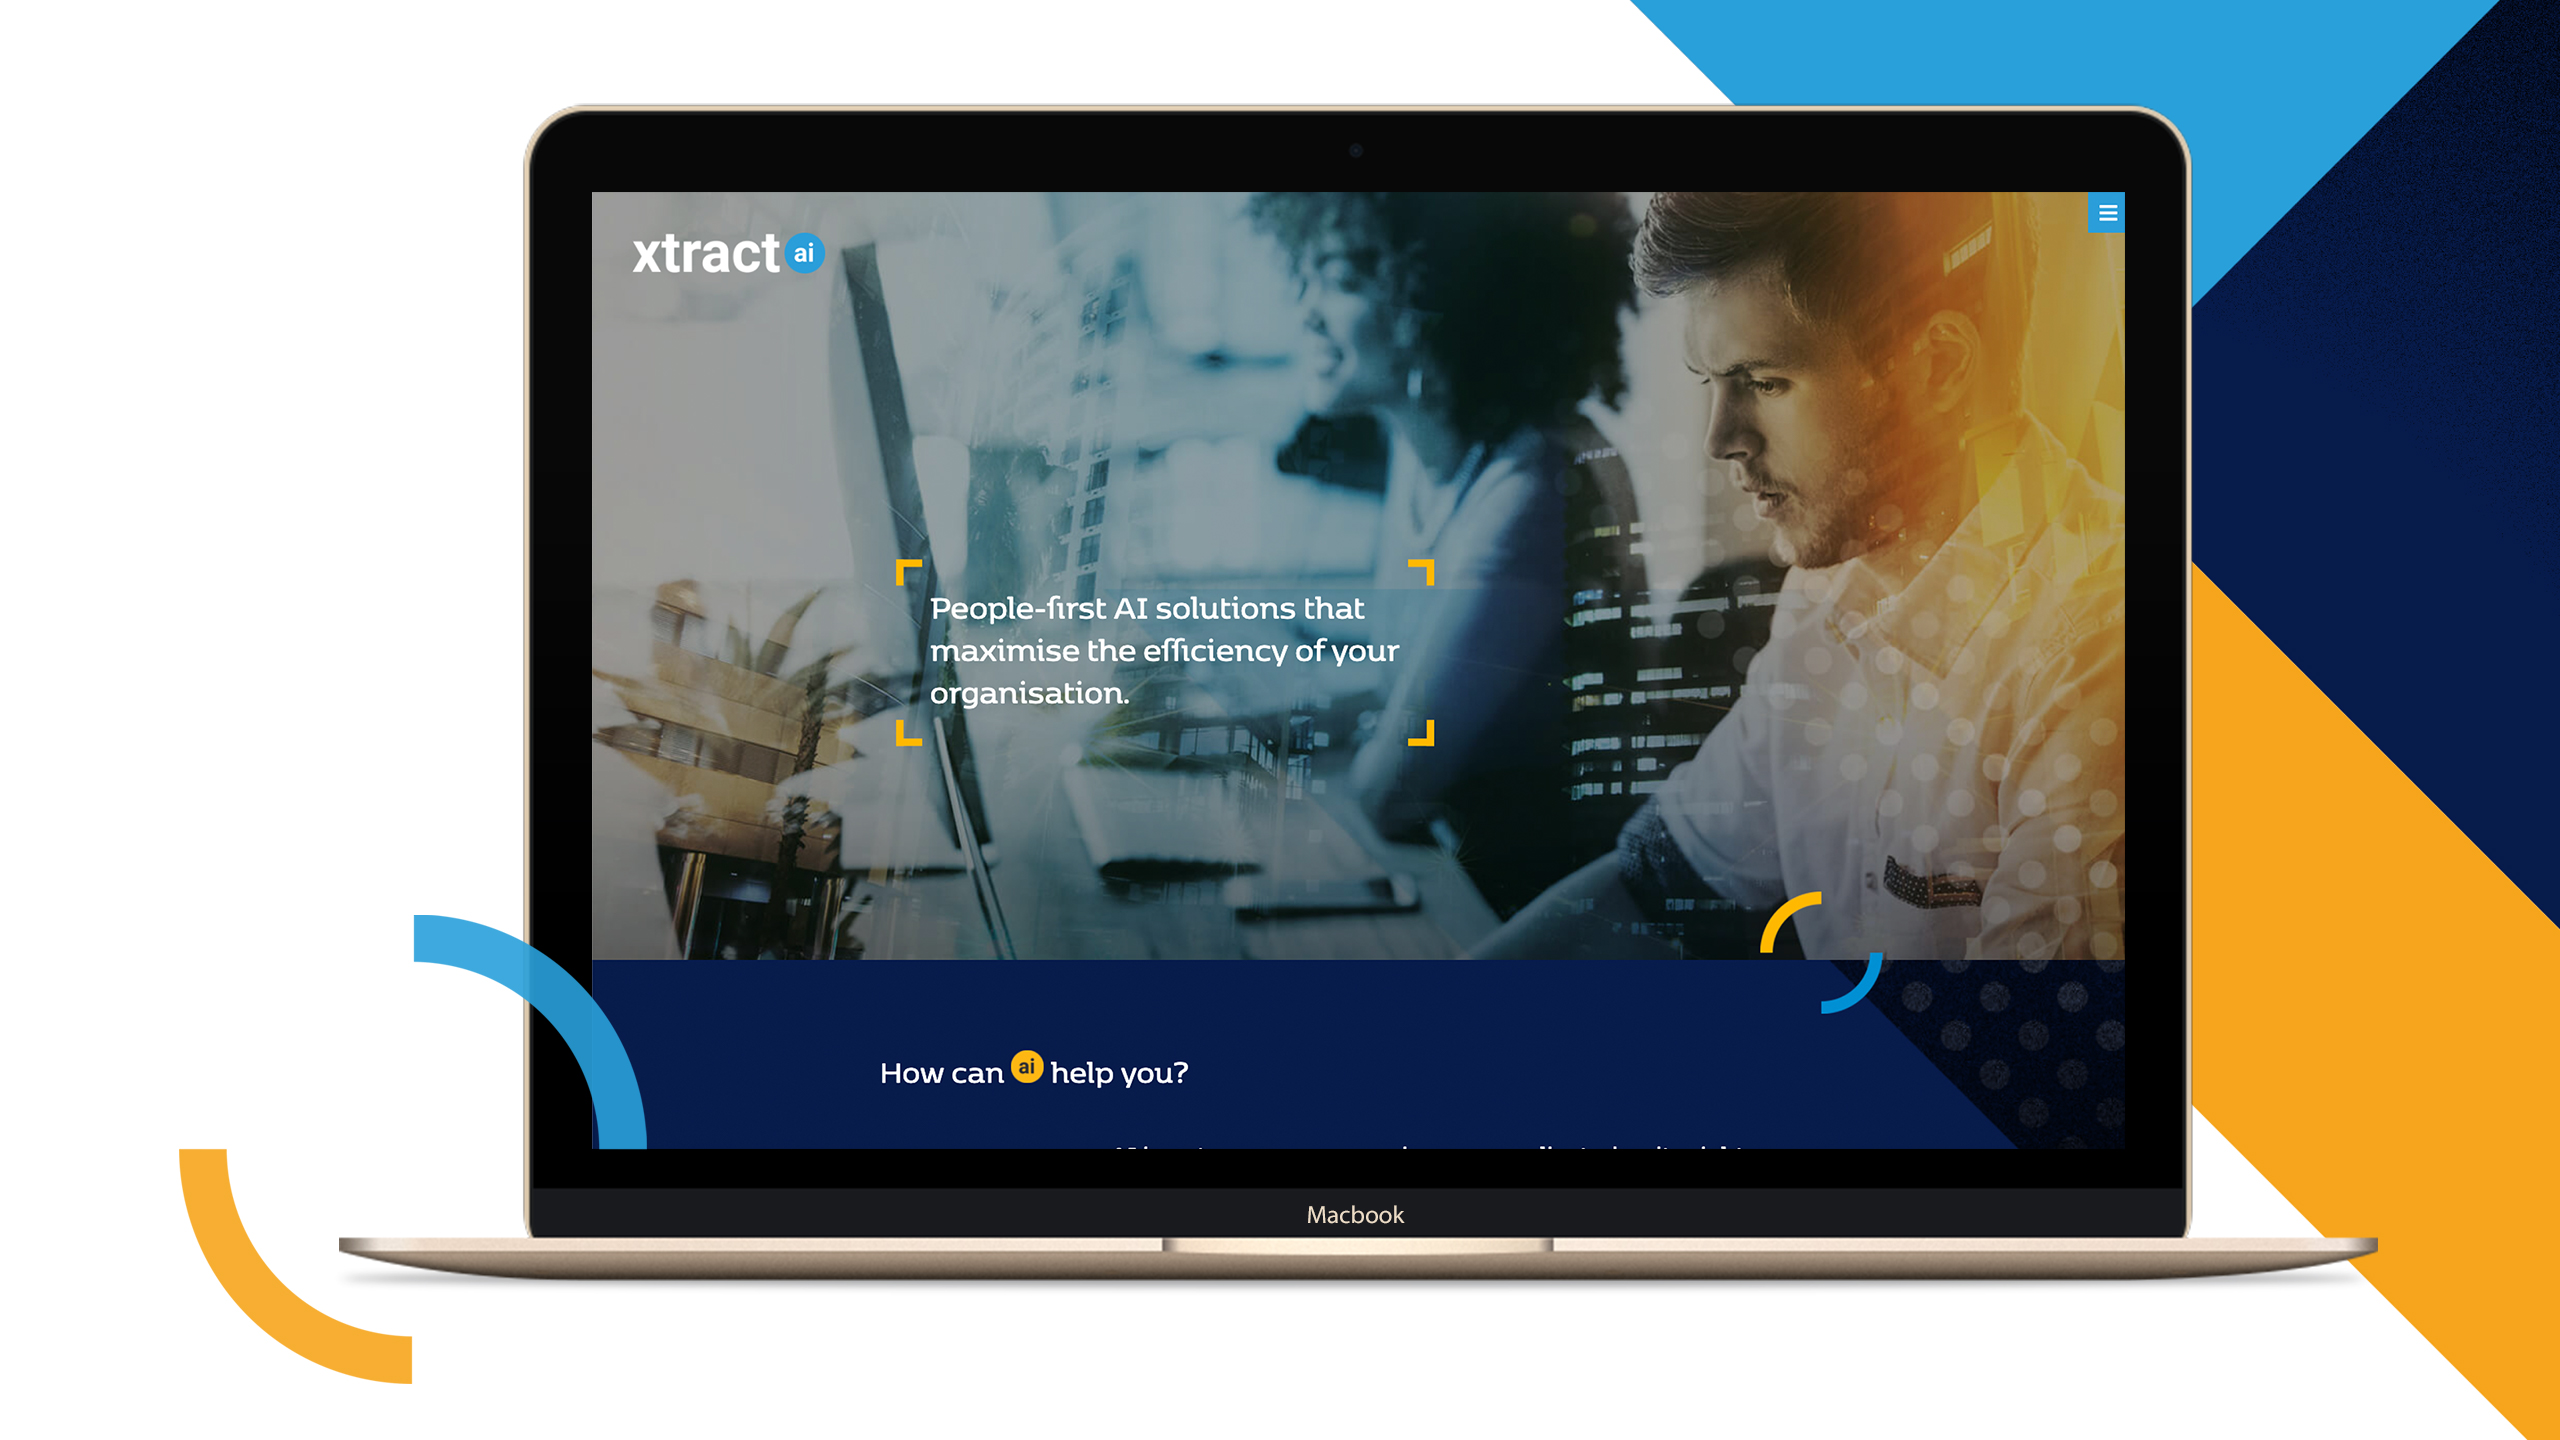 A mockup of the Xtract website depicts the new brand image.